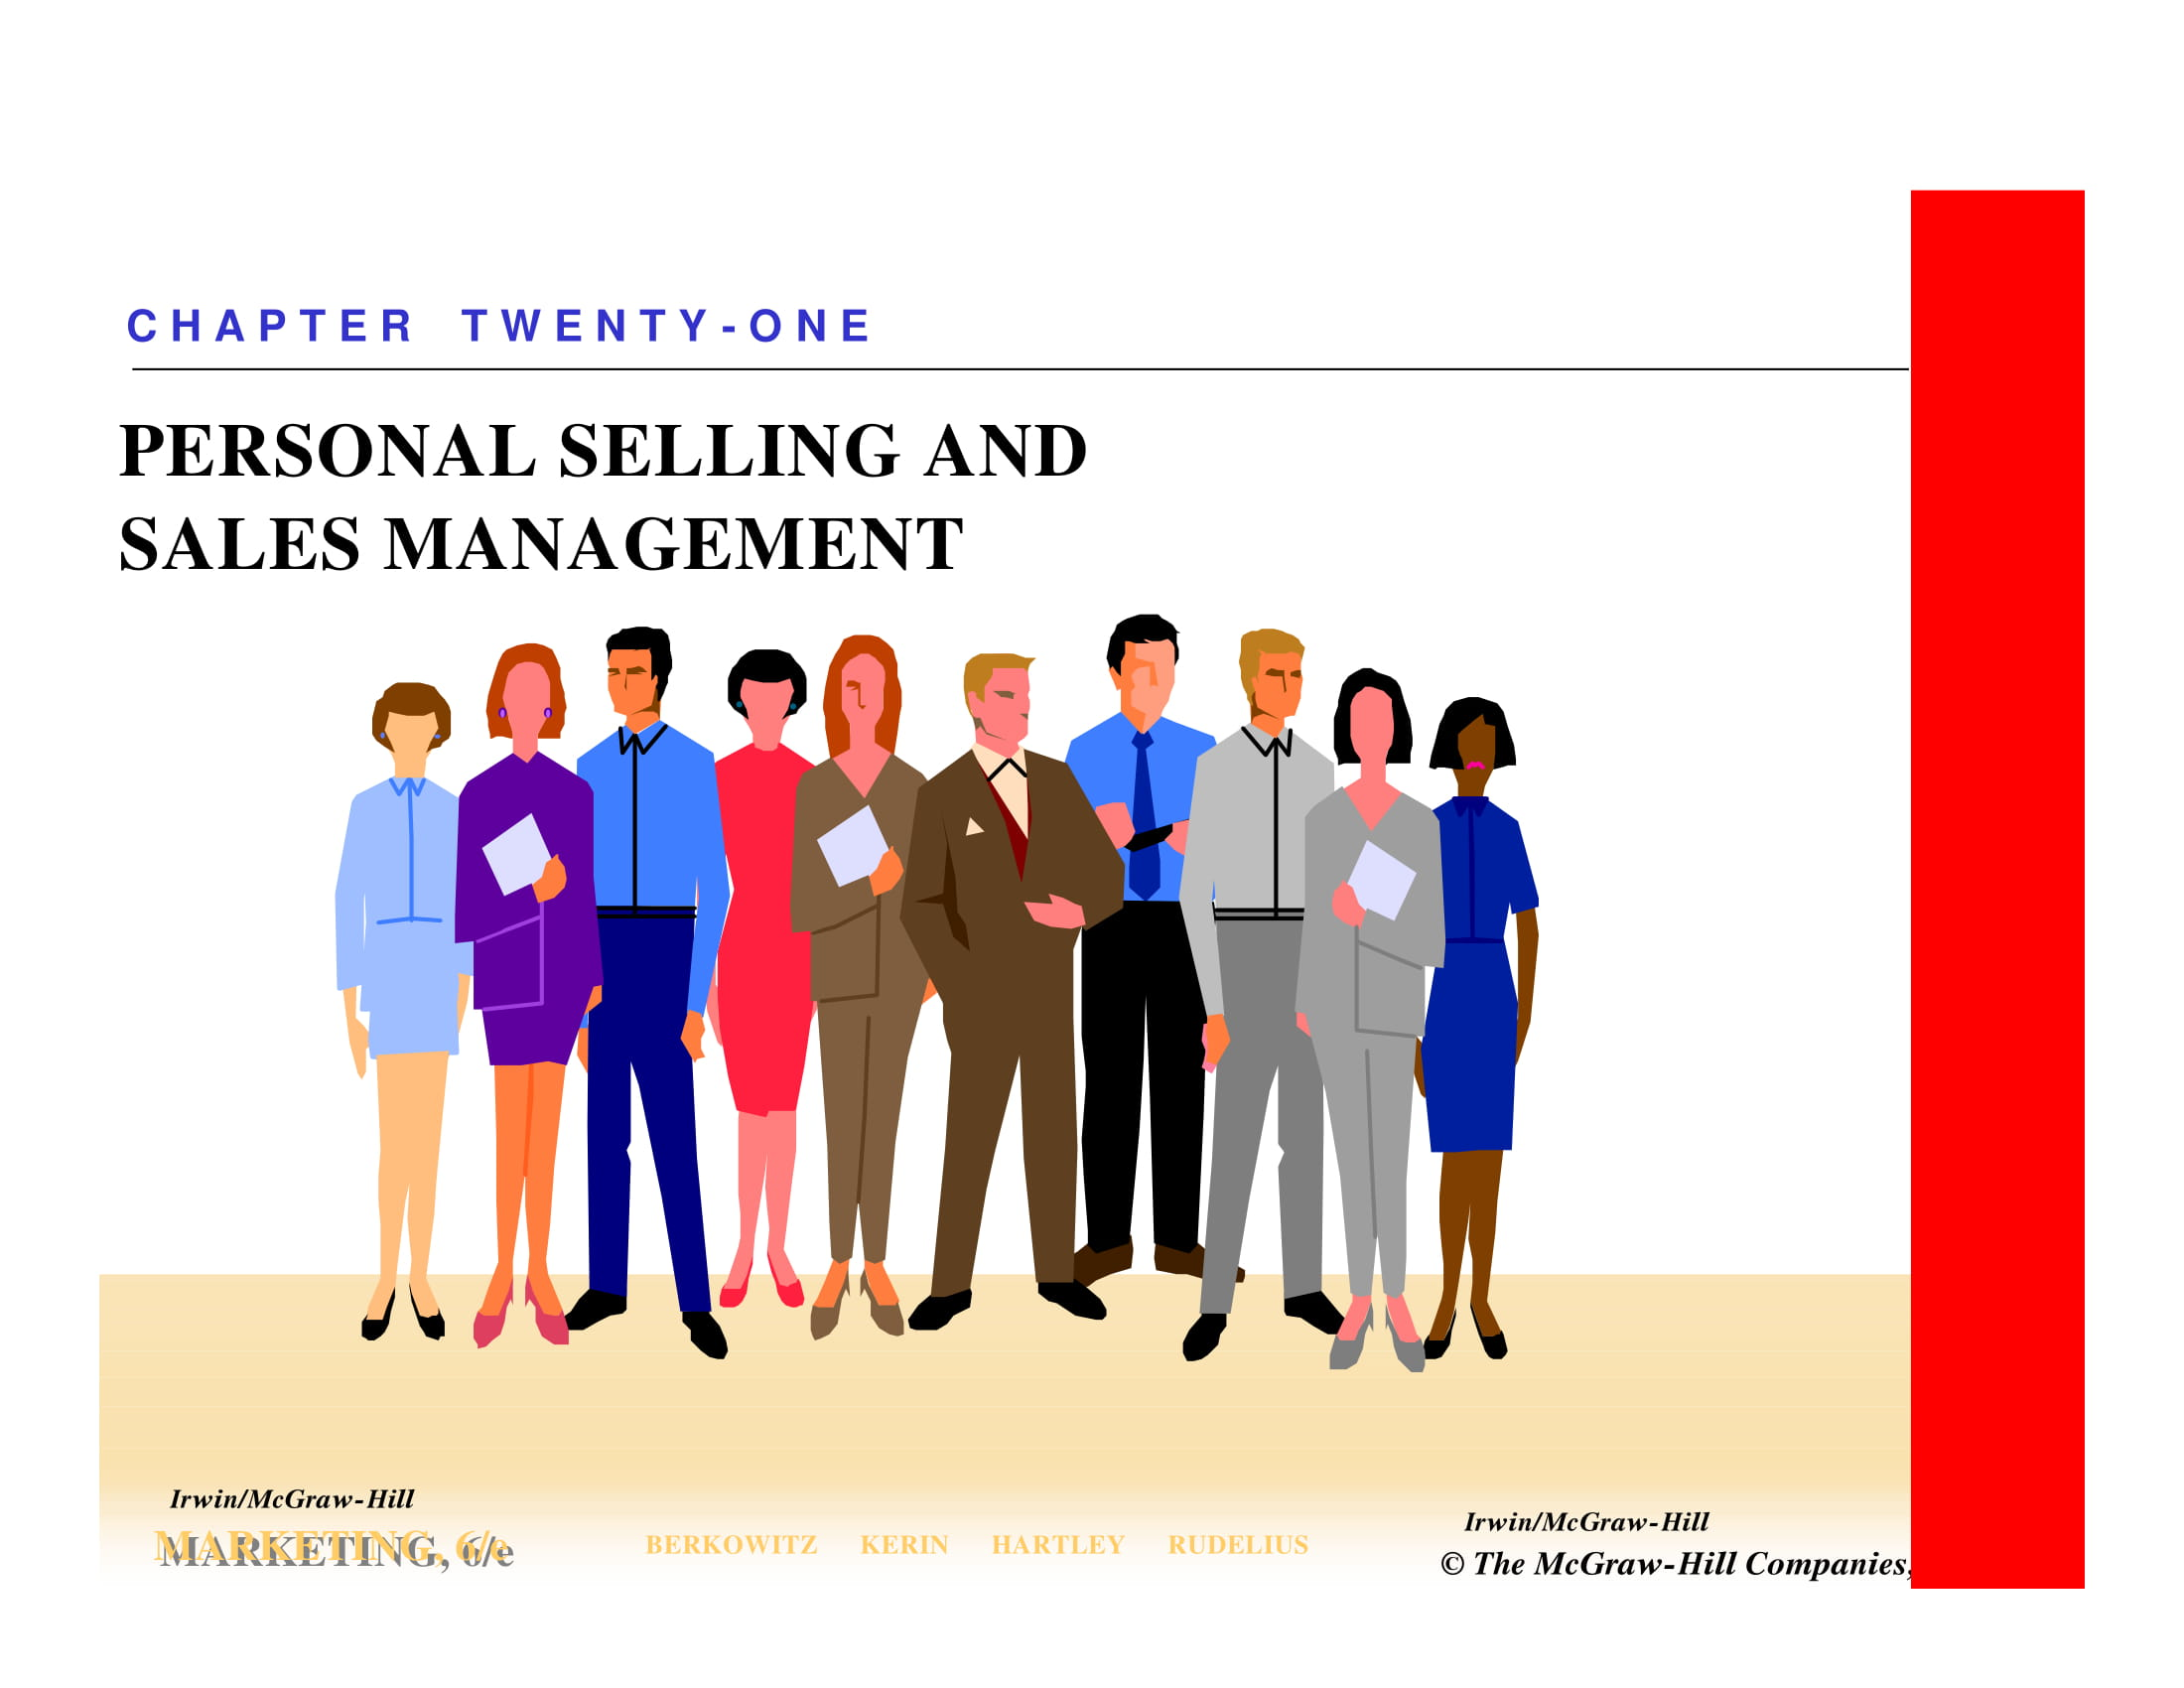 personal selling and sales management strategic plan example 01